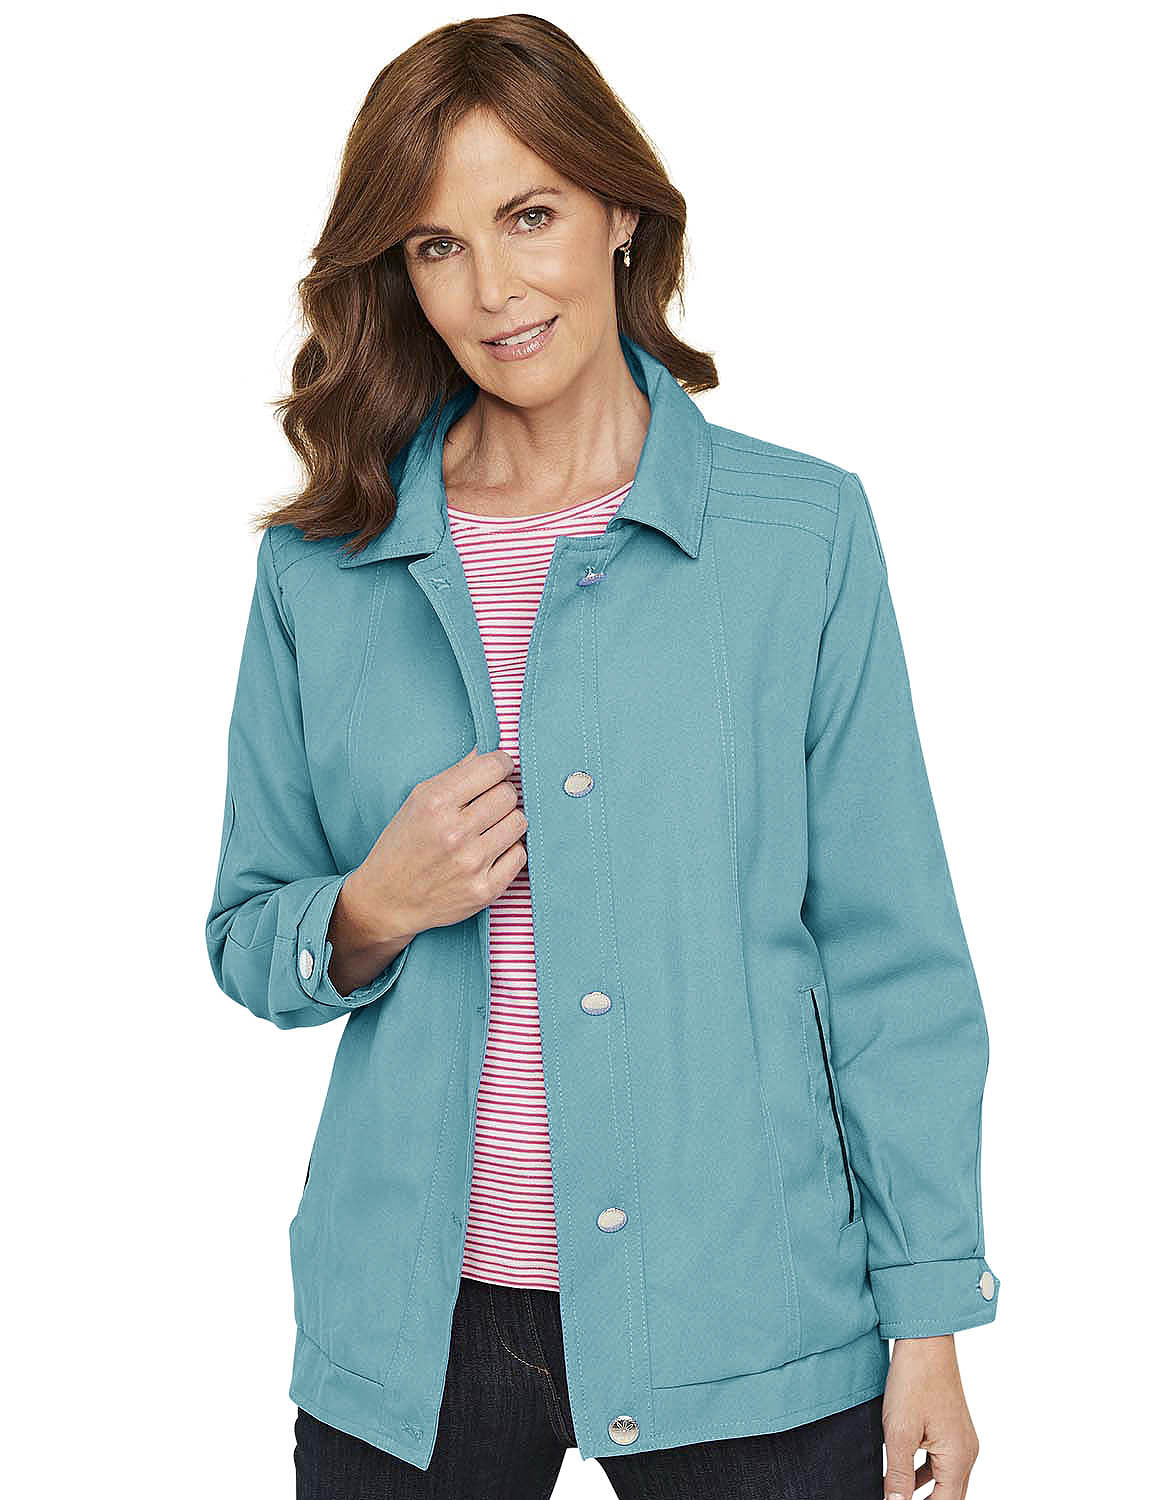 Ladies Blouson Style Lightweight Jacket Coat With Piping